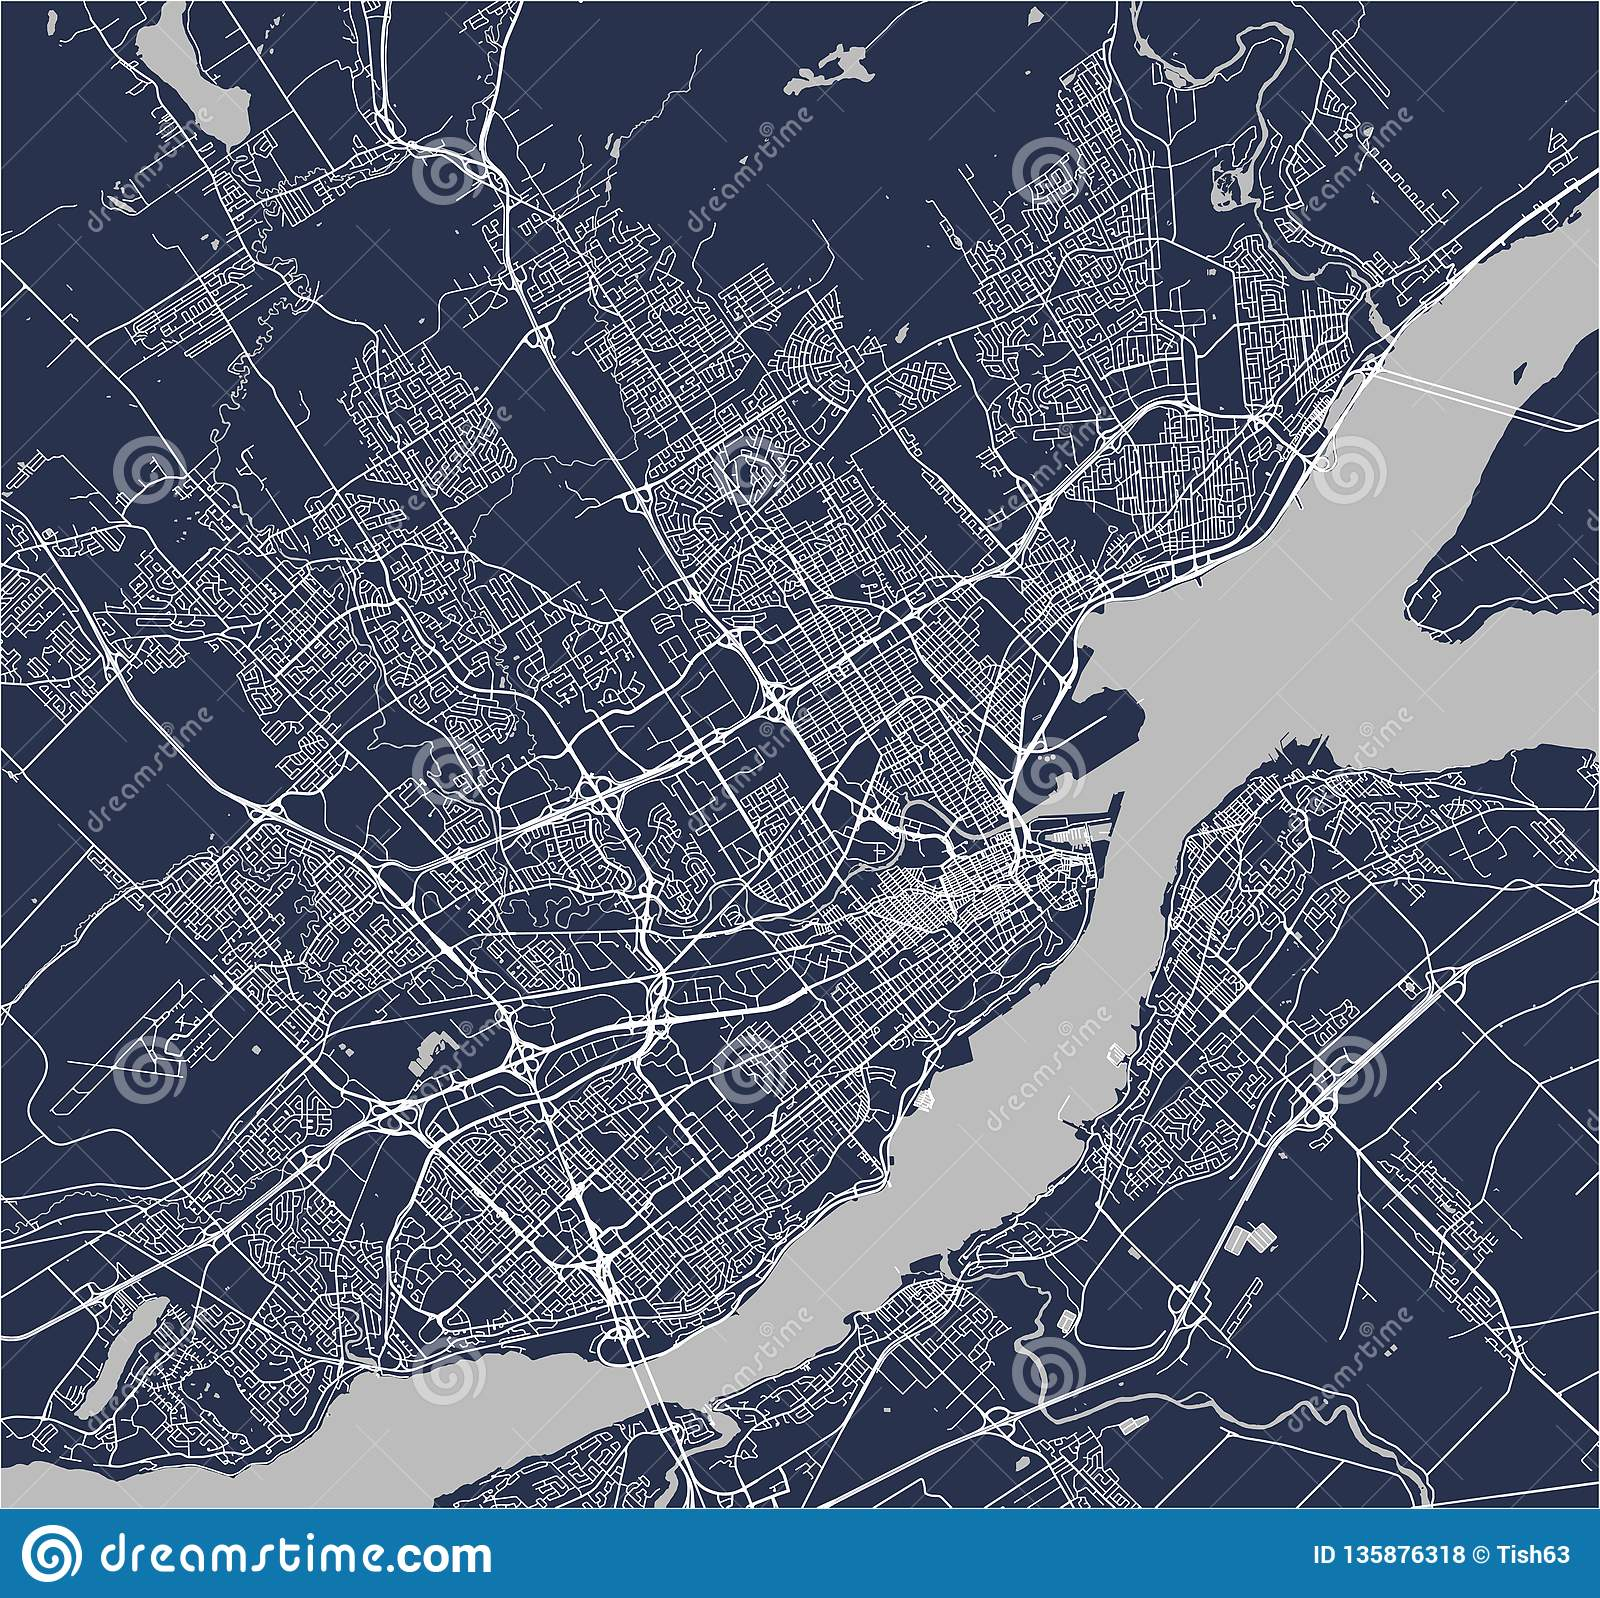 Map Of The City Of Quebec, Canada Stock Illustration ... Quebec Highway Map on belgium highway map, seattle highway map, portland highway map, france highway map, japan highway map, england highway map, italy highway map, miami highway map, appalachian mountains highway map, cincinnati highway map, north america highway map, new zealand highway map, romania highway map, portugal highway map, cape breton island highway map, paris highway map, delaware highway map, houston highway map, nashville highway map, bc highway map,